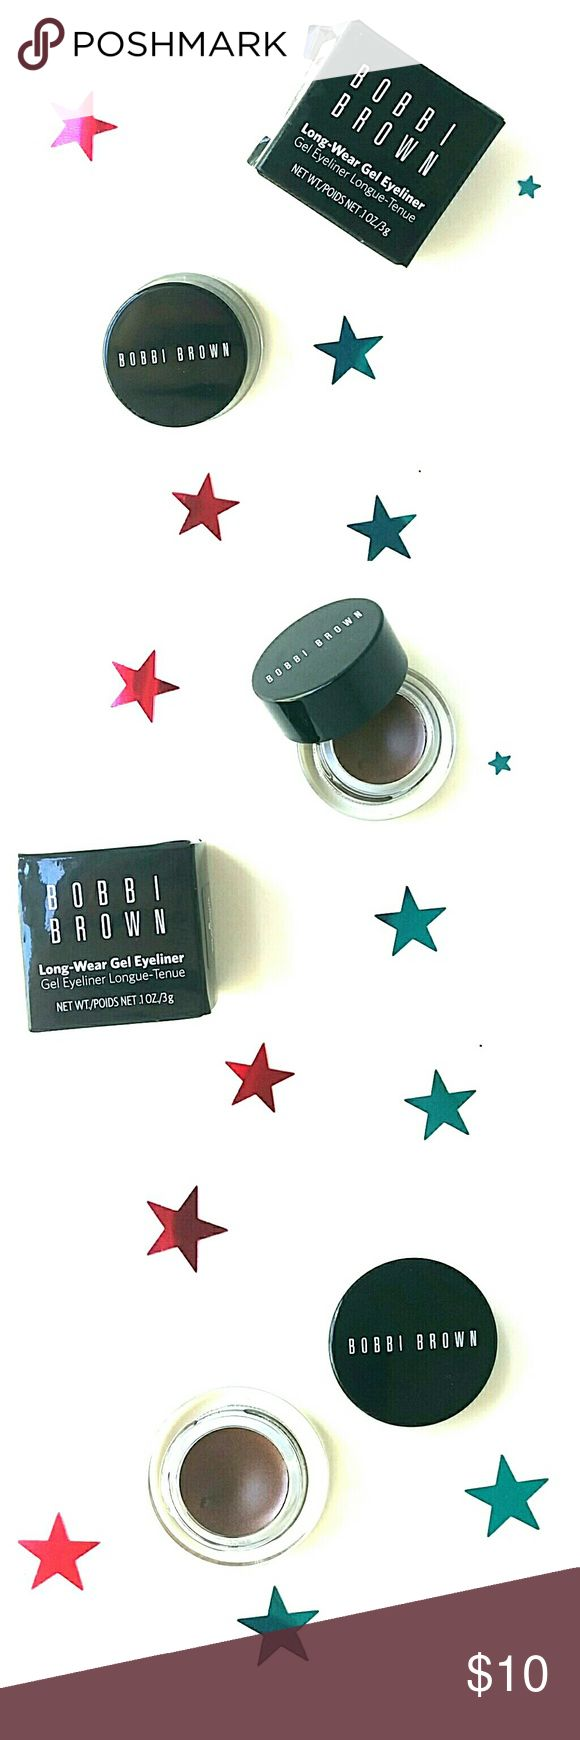 Bobbi Brown Long Wear Eyeliner Bronze Shimmer Ink Award winning long wearing eyeliner offers the precision of liquid liner with the ease of a gel based formula. 12 hours: waterproof, sweatproof. Will it flake or fade. Can be used as a brow filler also. Bobbi Brown Makeup Eyeliner